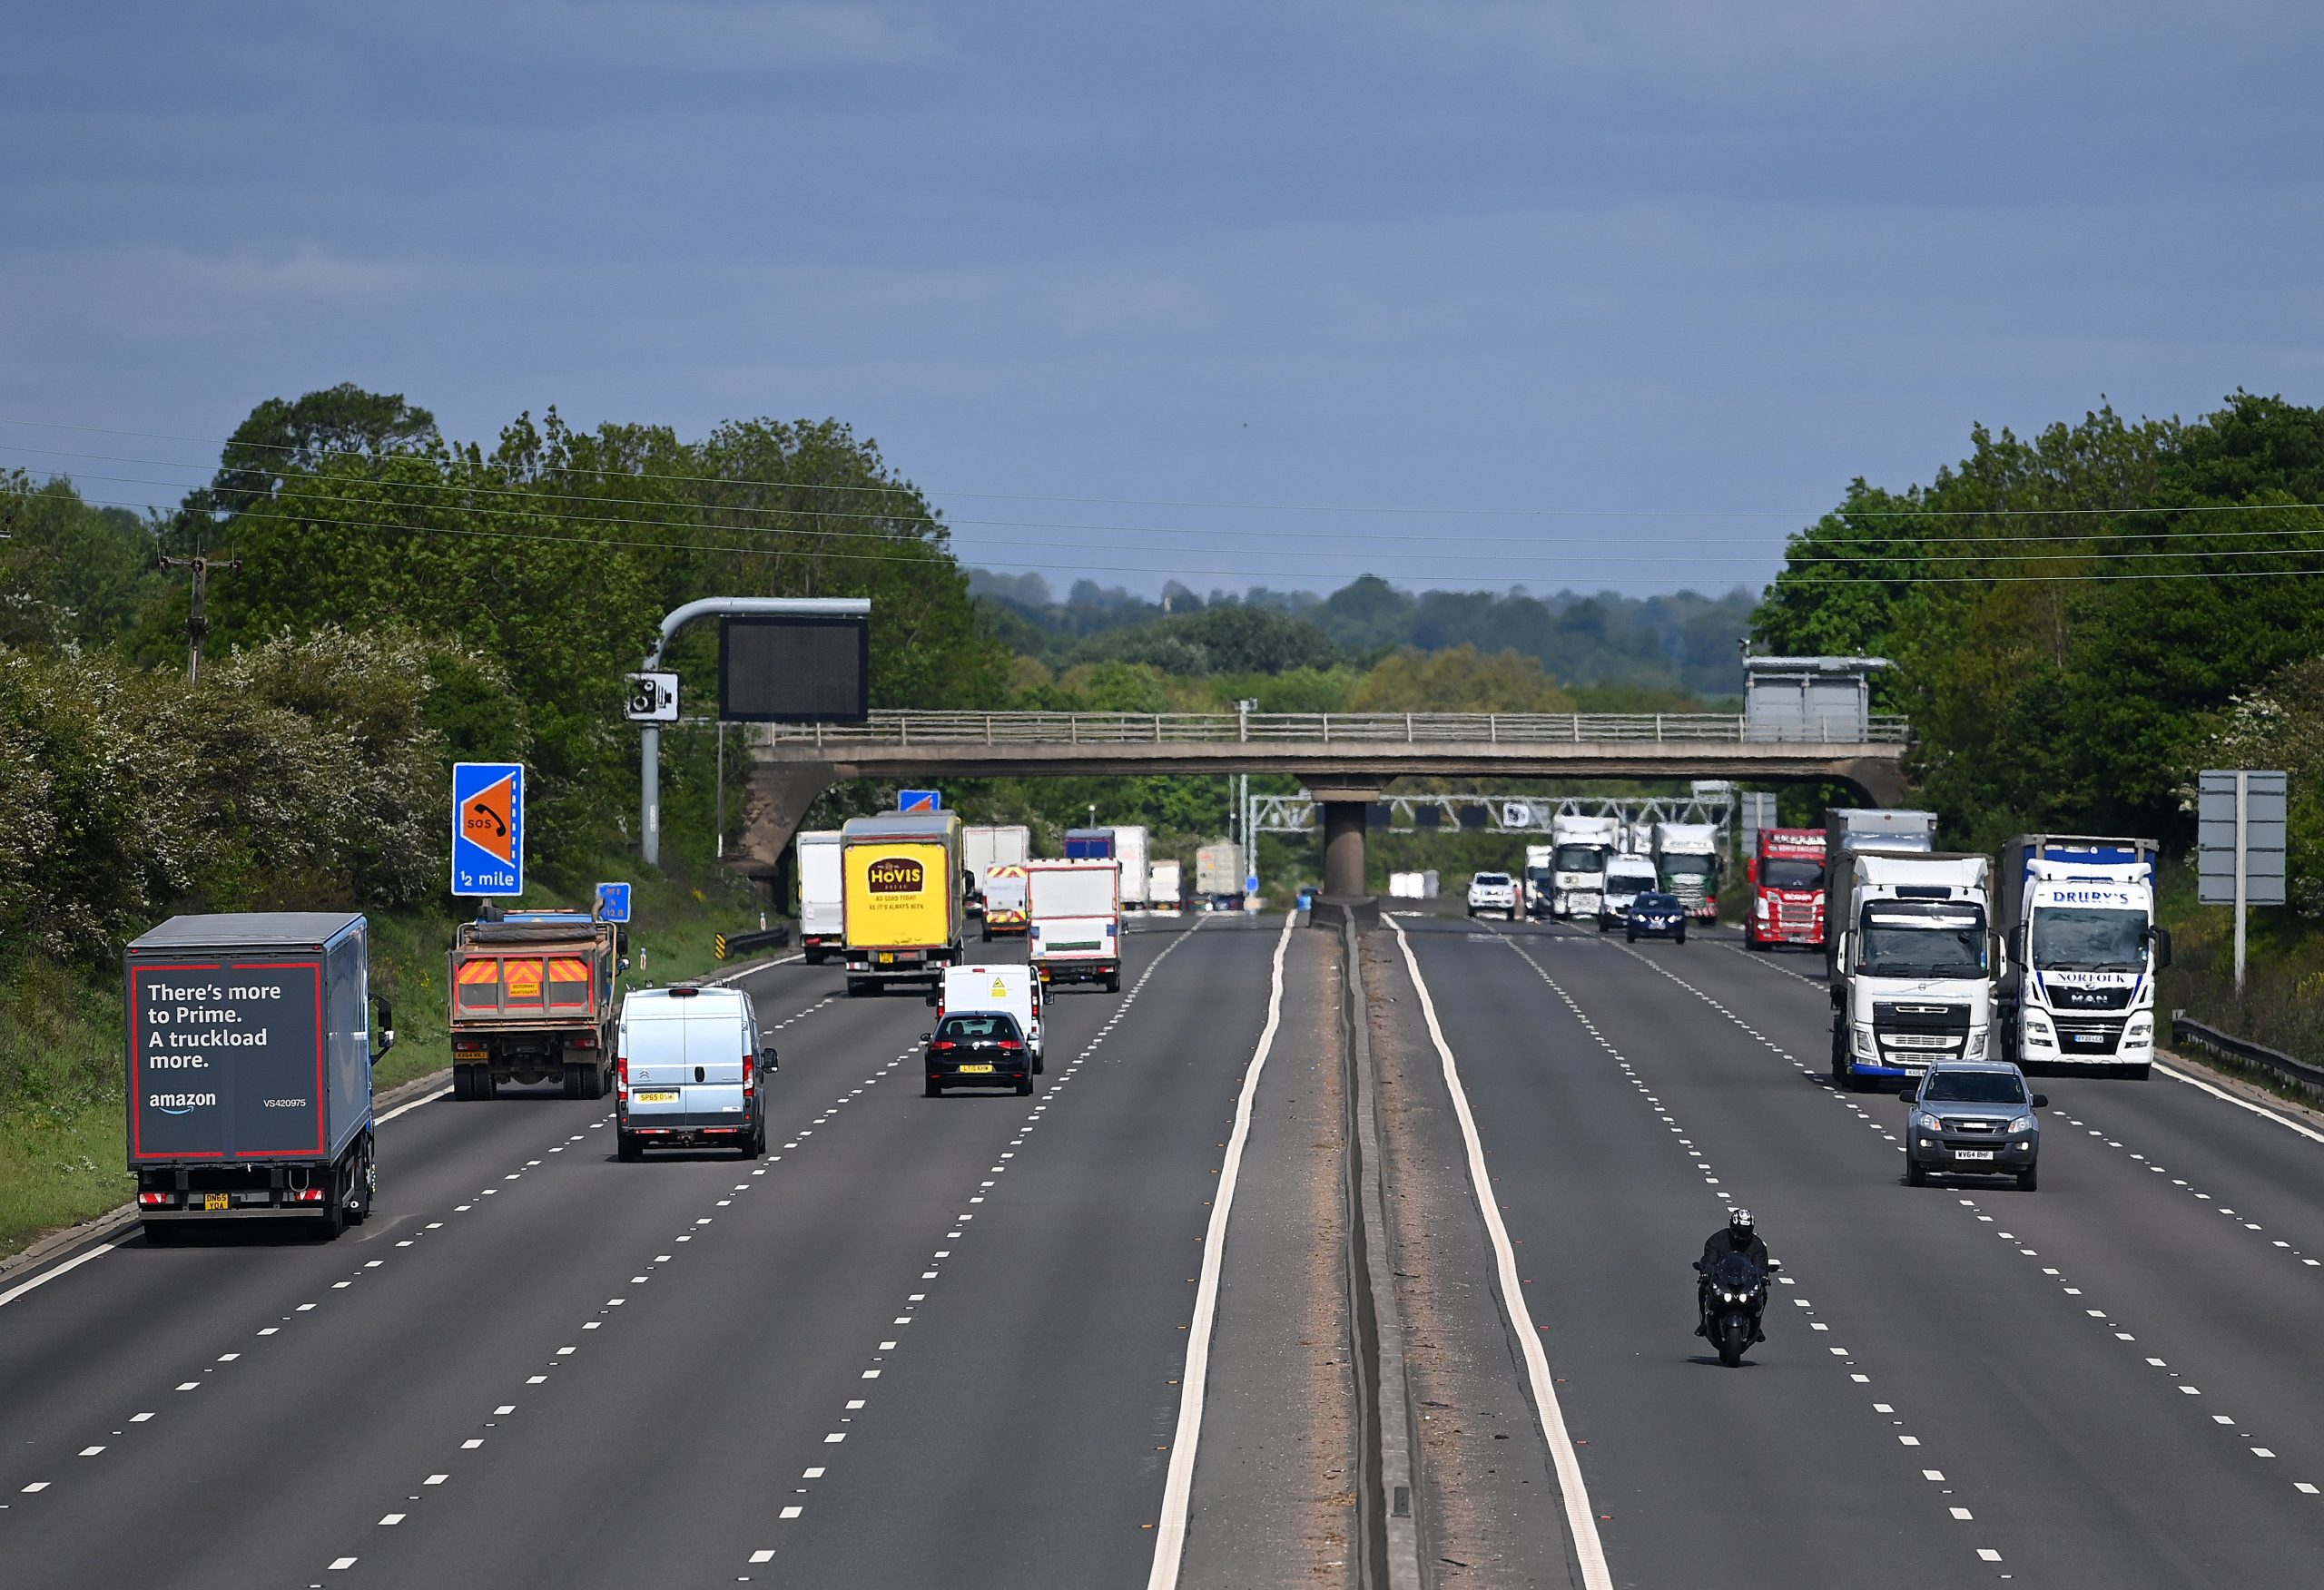 Climate Crisis: Highway speed limits must be lowered to 60 miles per hour to reduce emissions and pollution